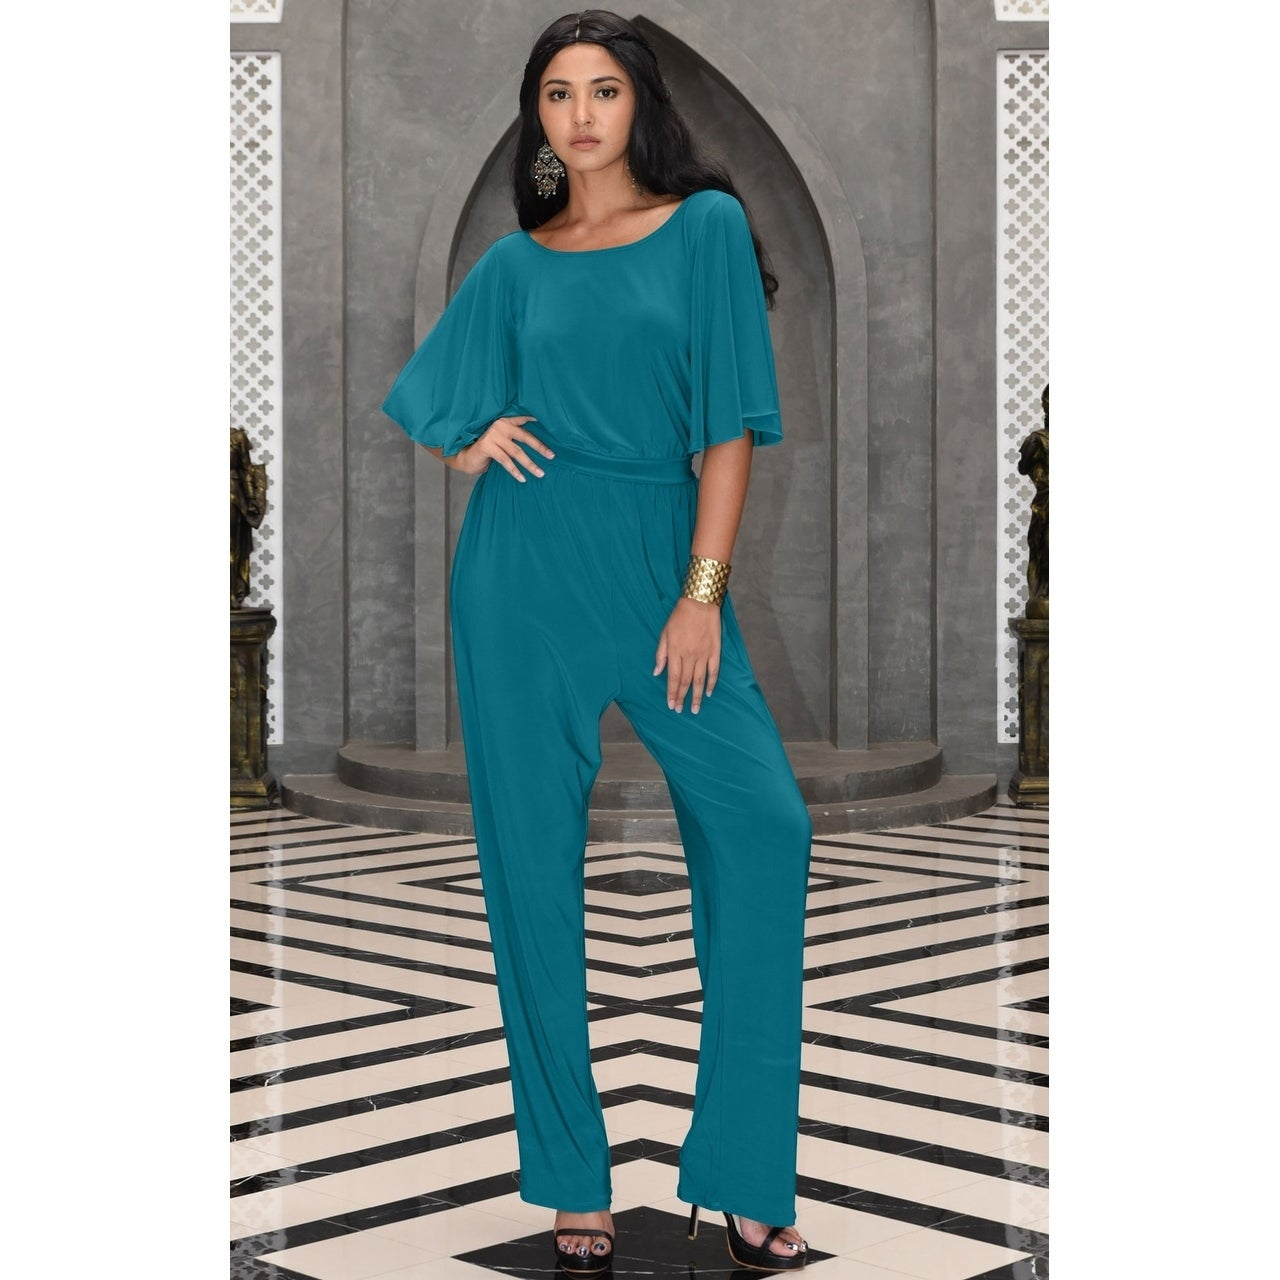 75bacfb7149 Shop KOH KOH Women s Round Neck Batwing 3 4 Sleeve Cocktail Jumpsuit - Free  Shipping On Orders Over  45 - Overstock - 10910390